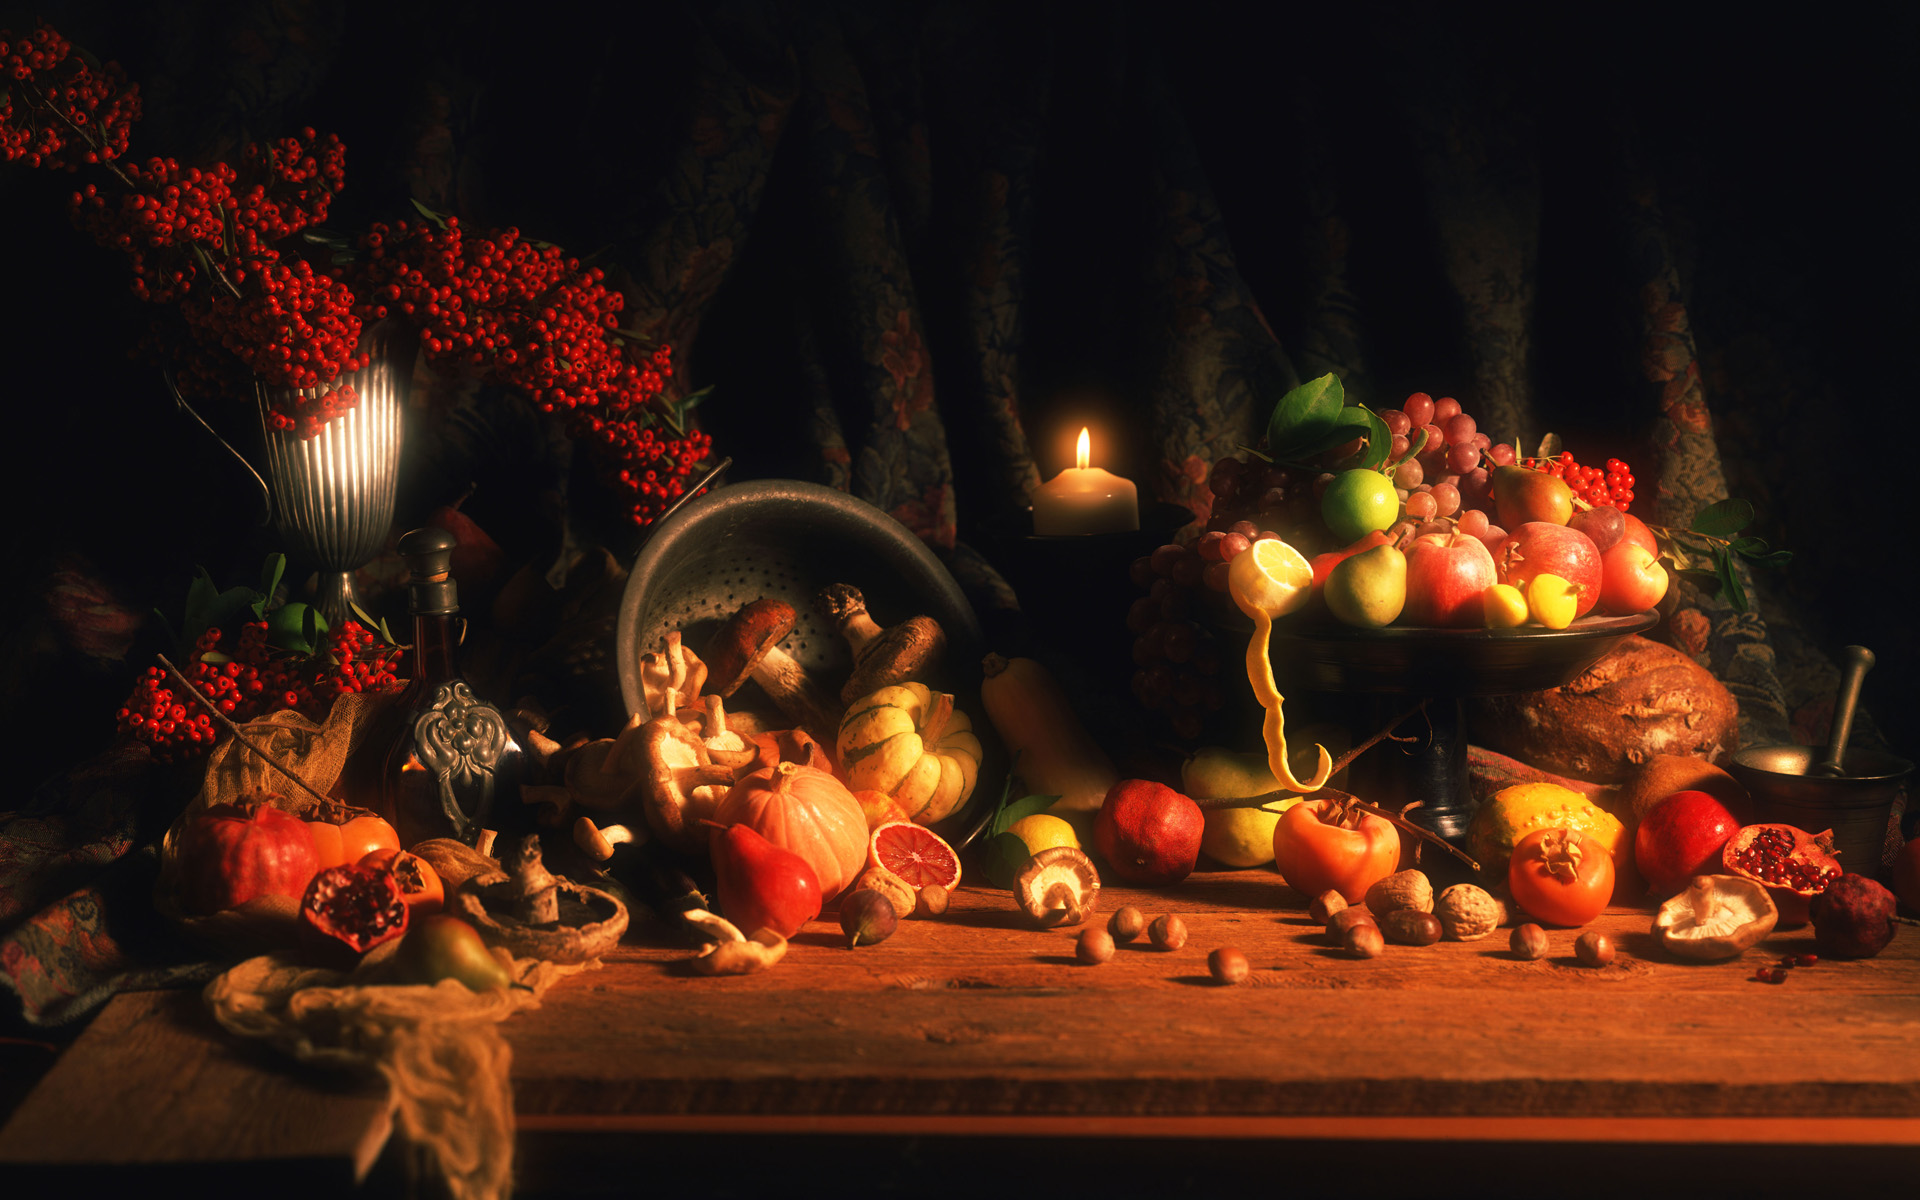 thanksgiving wallpapers for windows 7 - photo #8